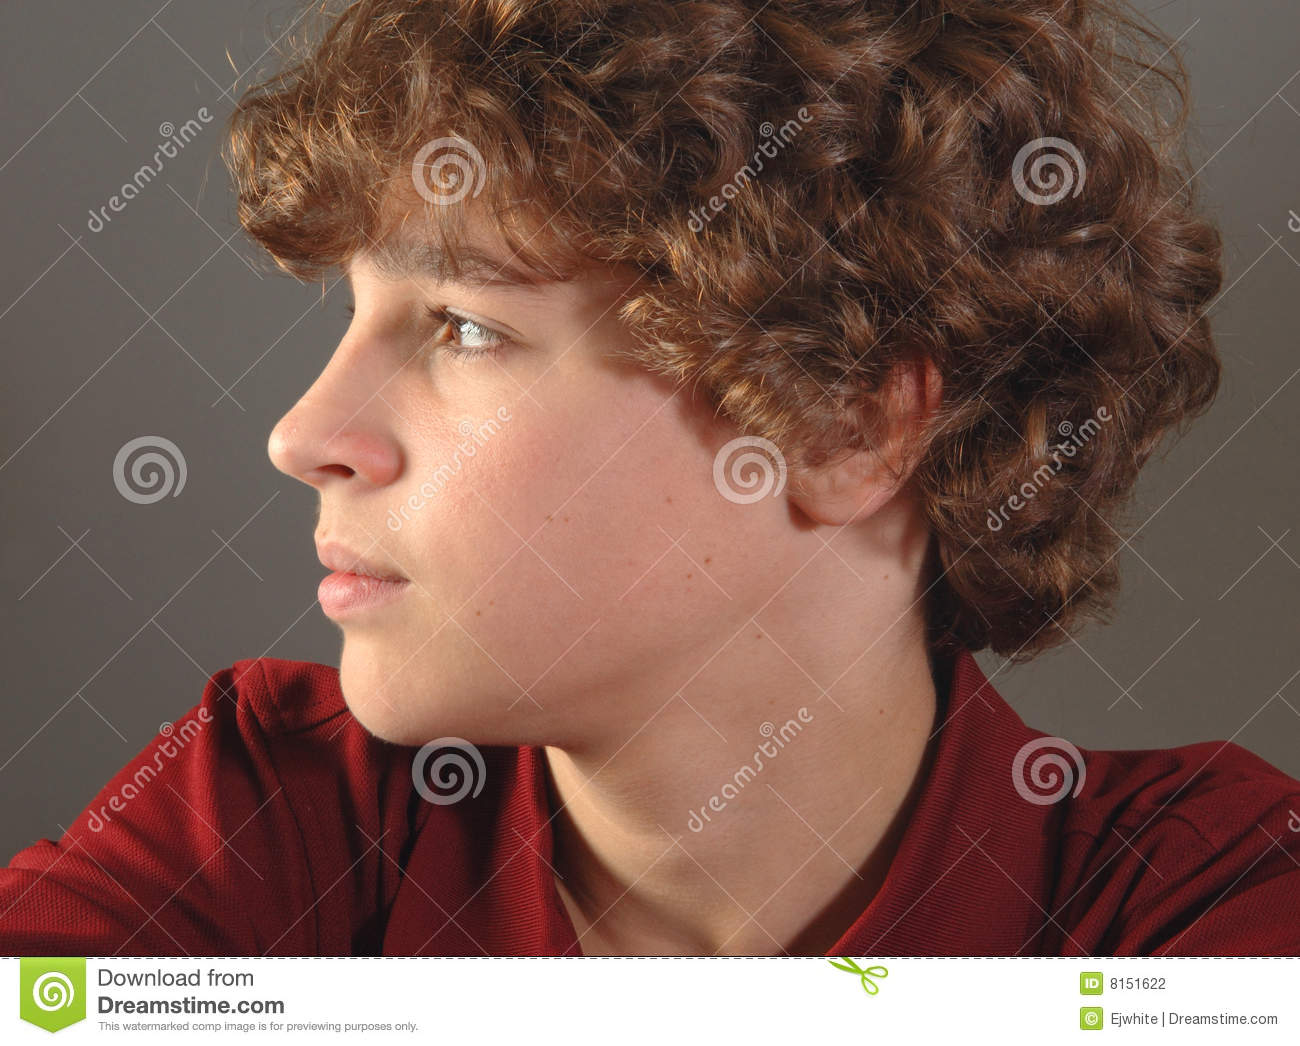 Handsome 12 Year Old Boy Stock Photography   Image  8151622